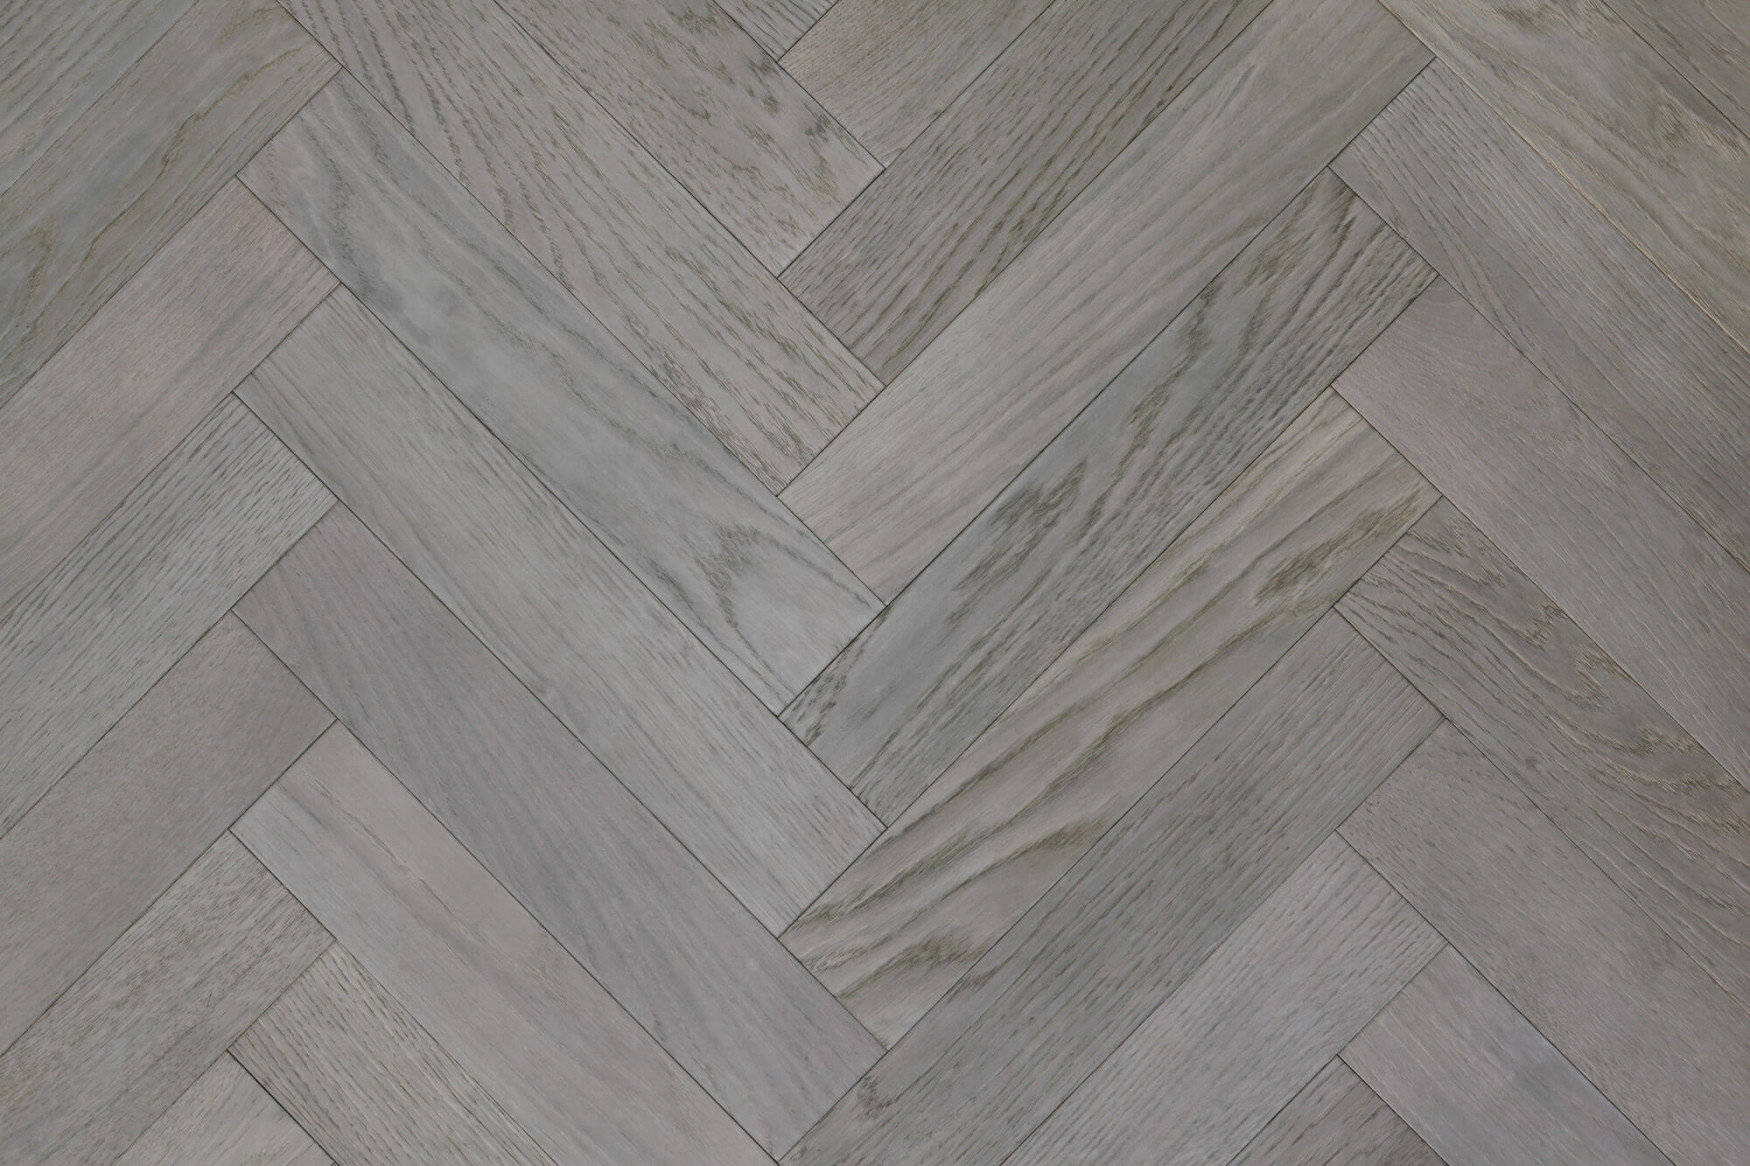 Element7-Parquet-ValerianHerringbone_AJ_883_232-2